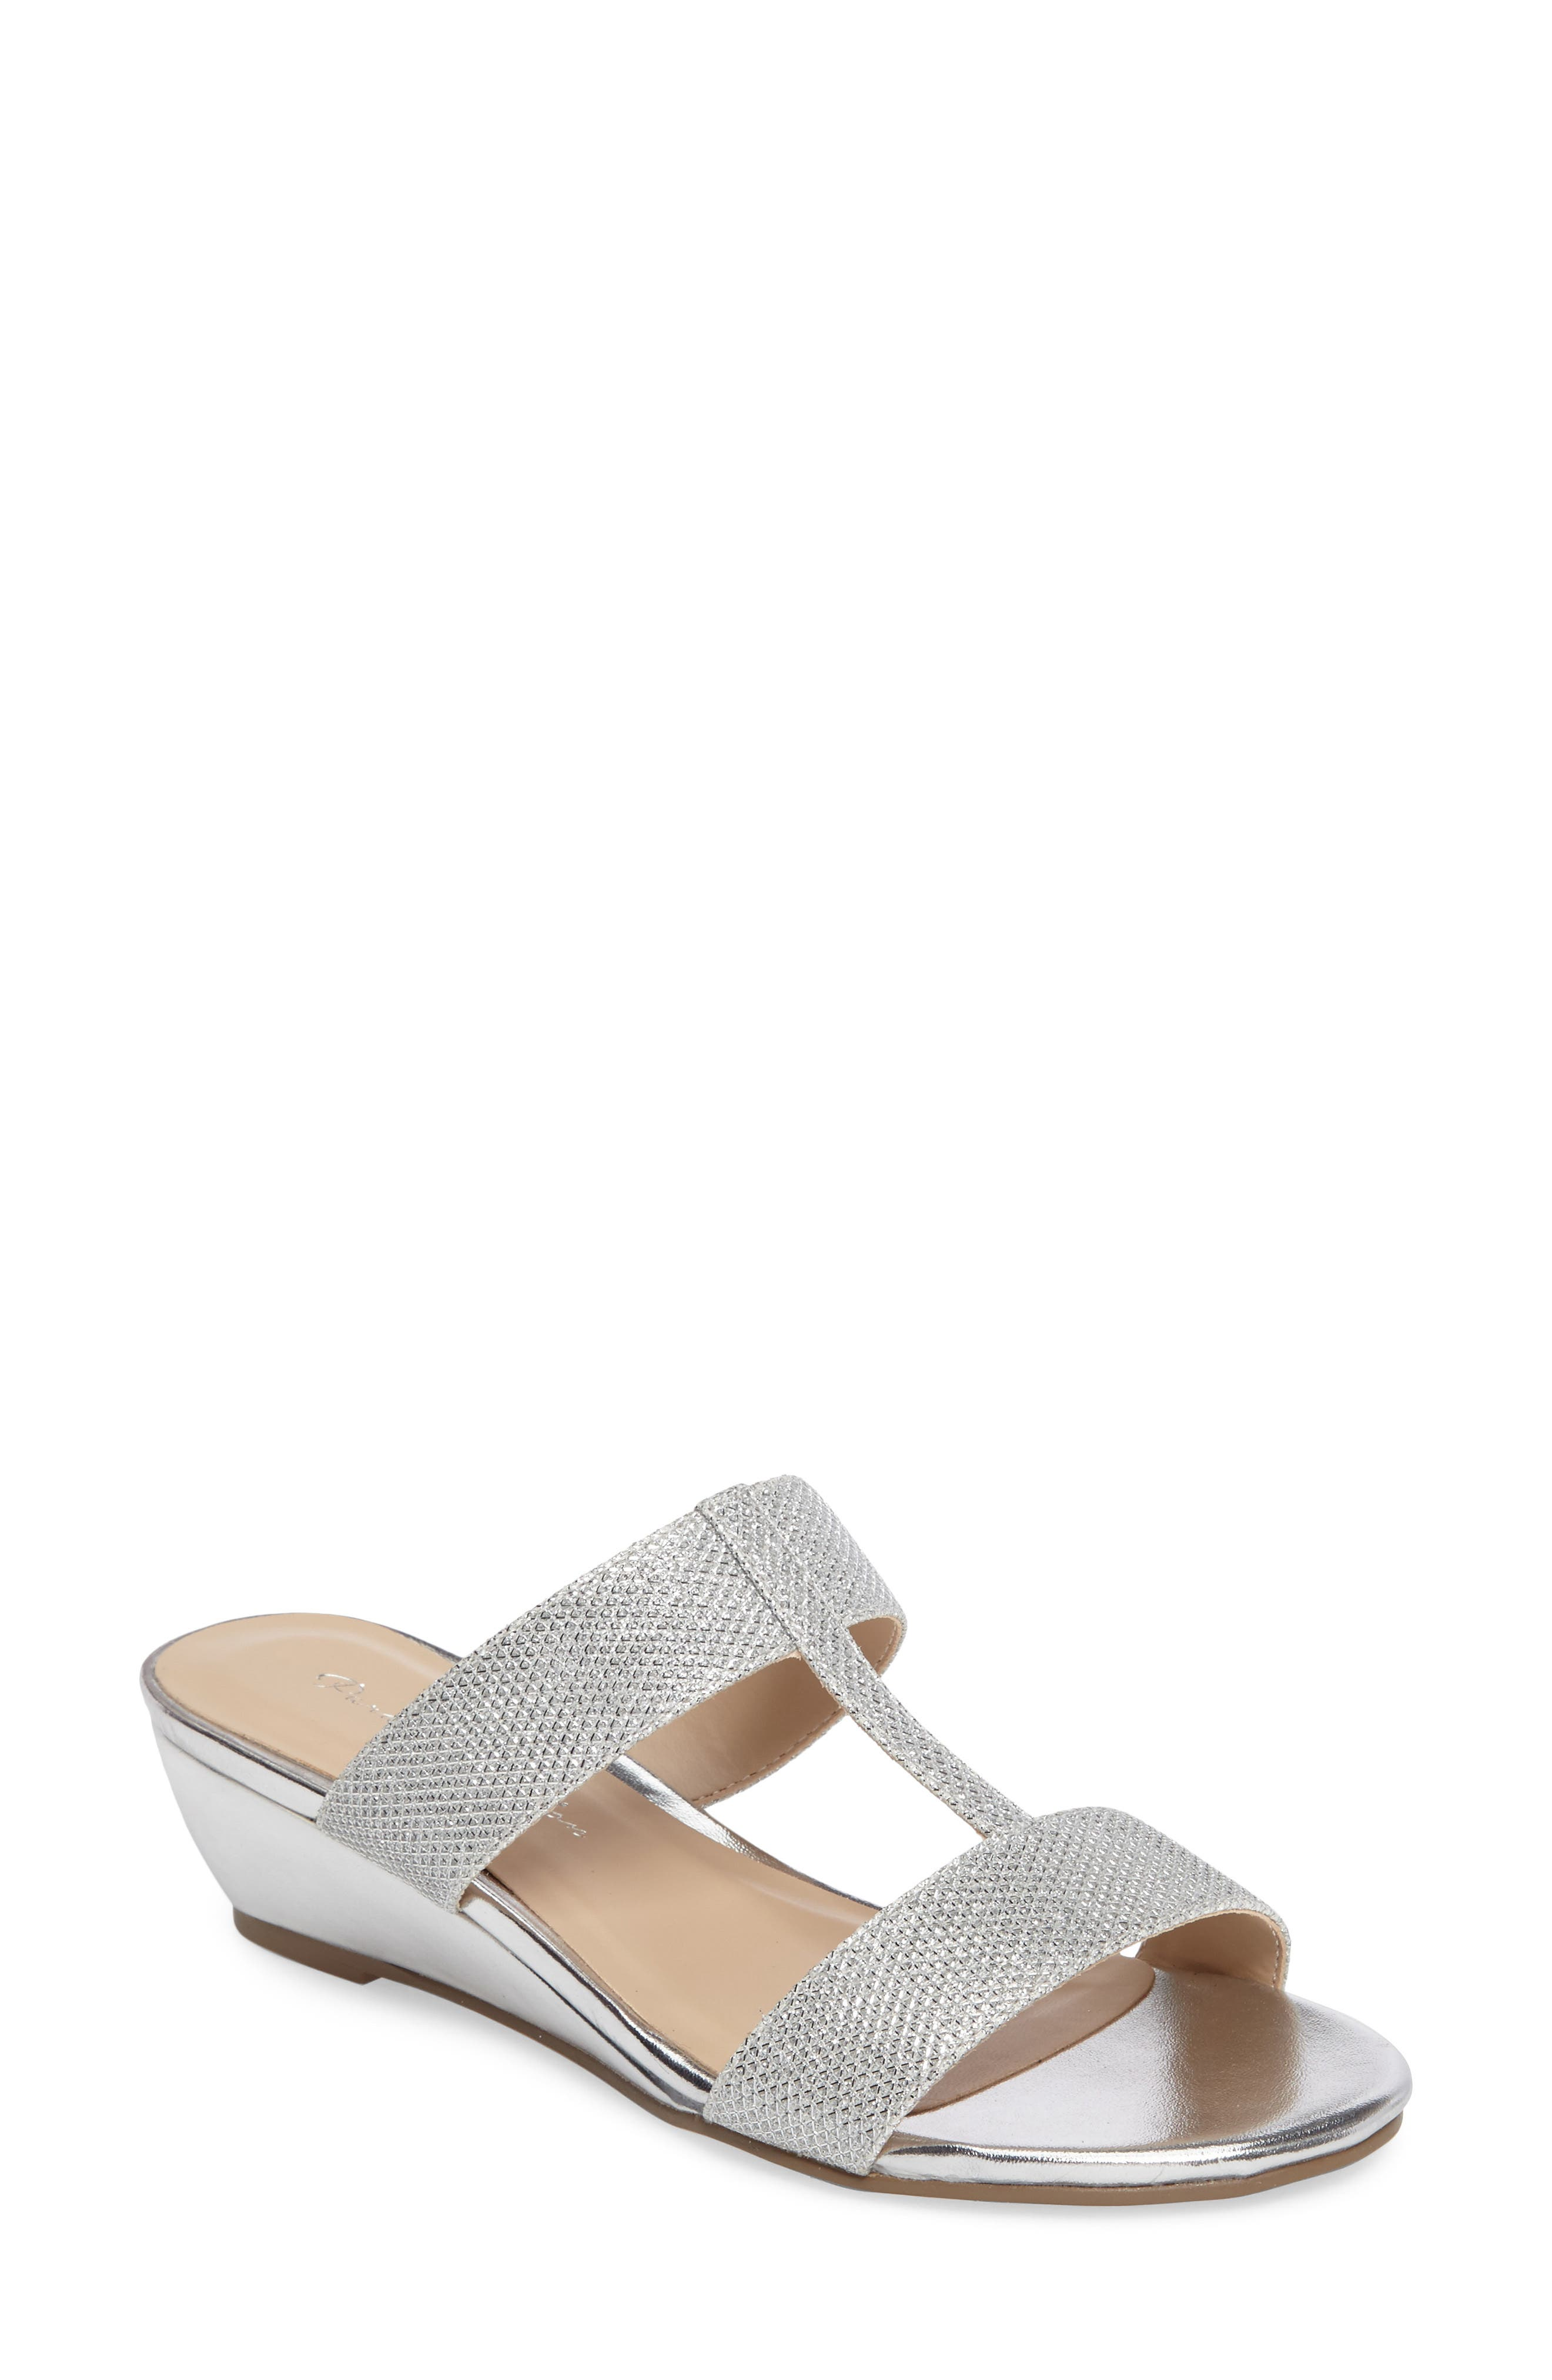 Melina Wedge Slide Sandal,                             Main thumbnail 1, color,